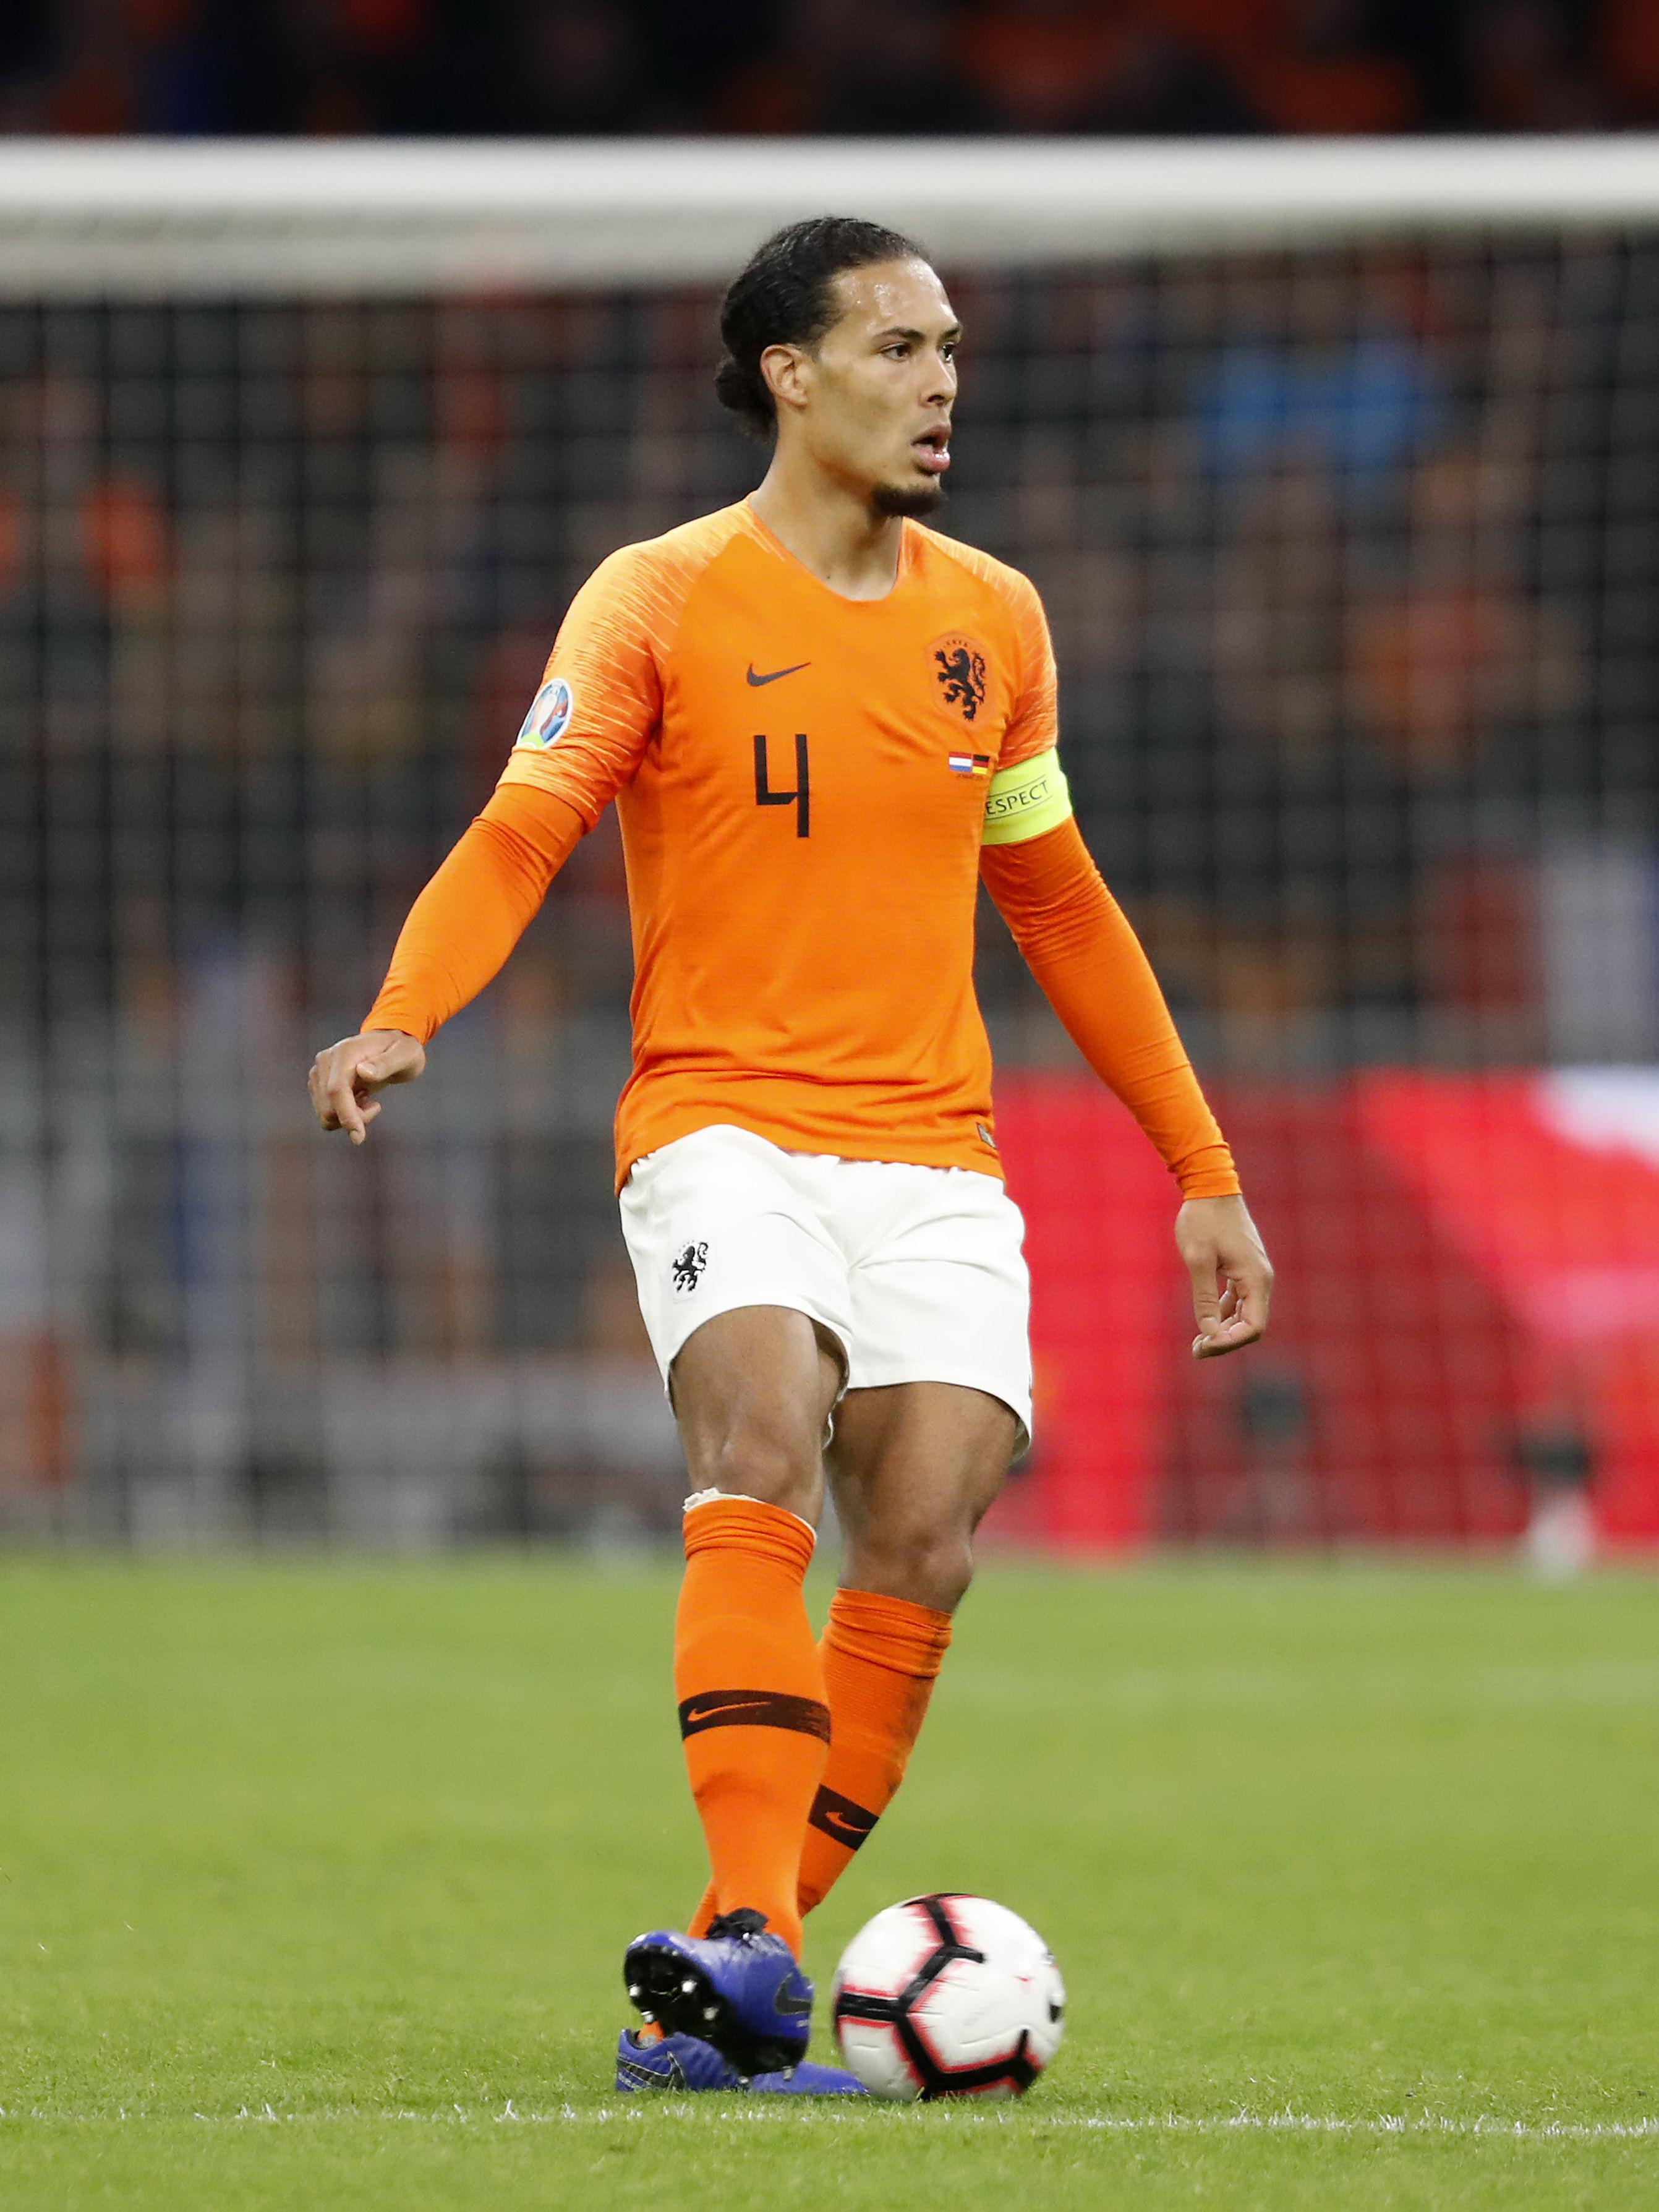 Virgil van Dijk remekelt a Liverpoolban, most holland mezben is trófeáért küzd/ Fotó: Getty Images